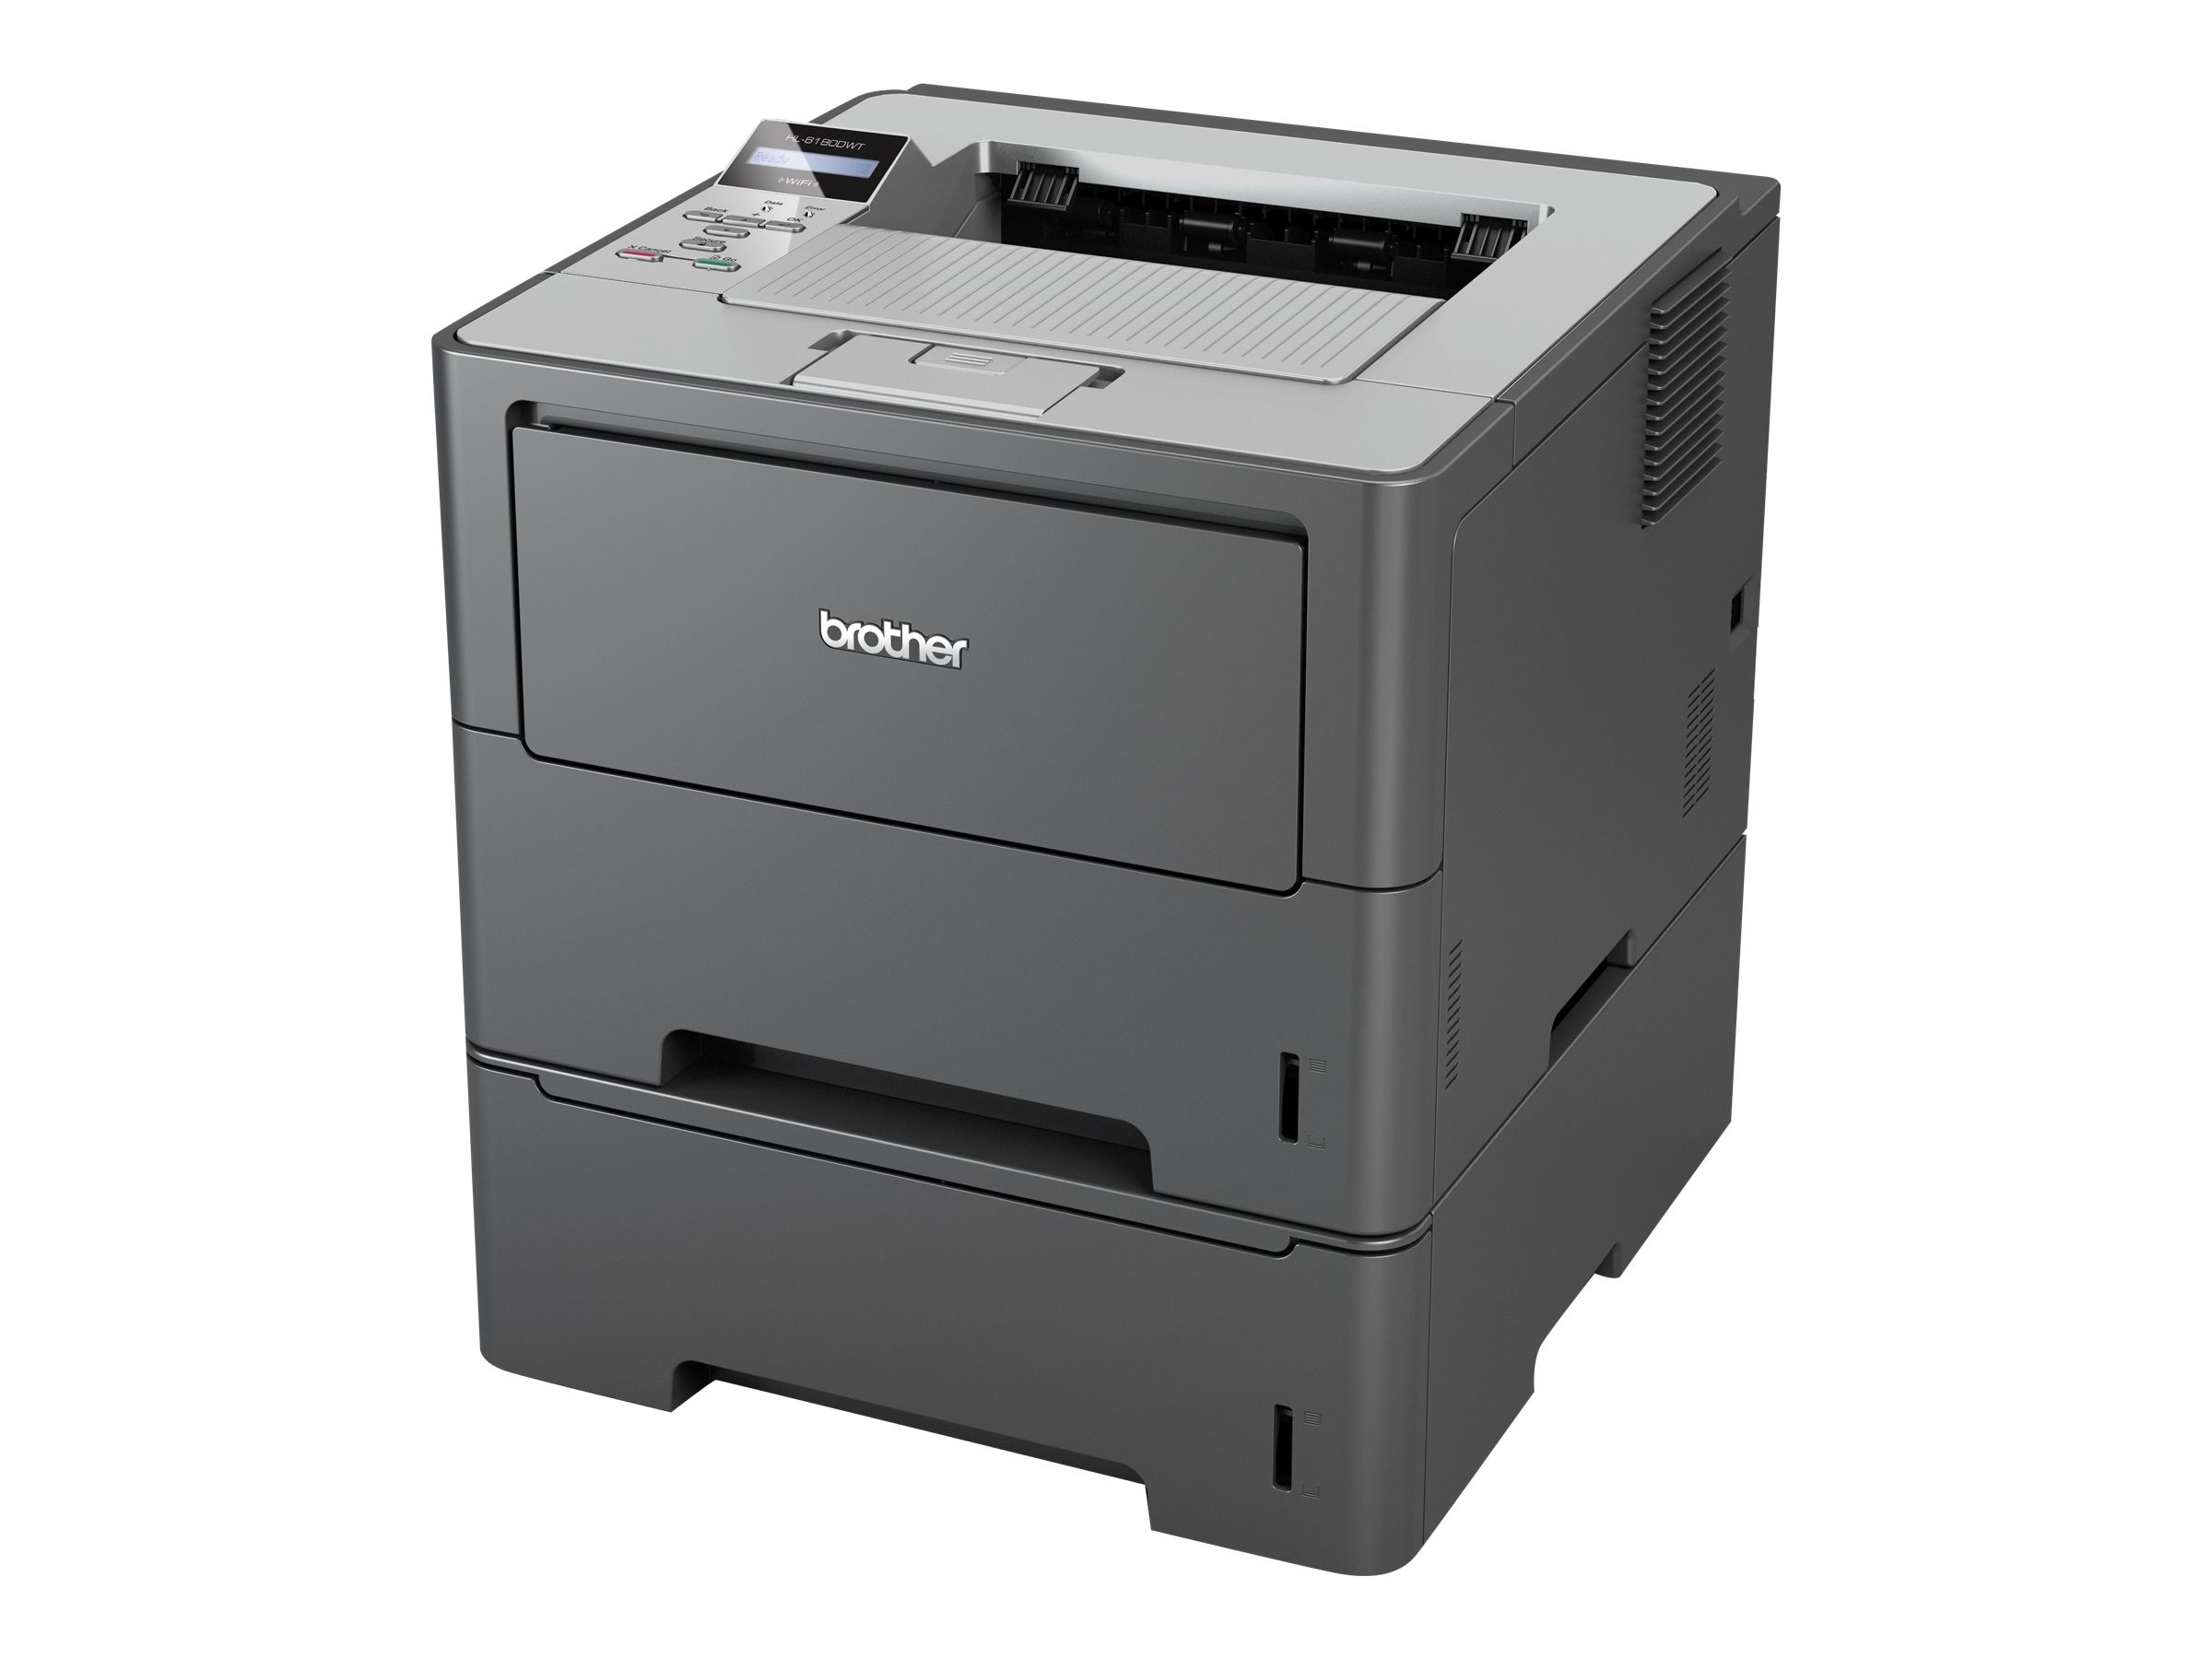 Brother HL-6180DWT Laser Printer